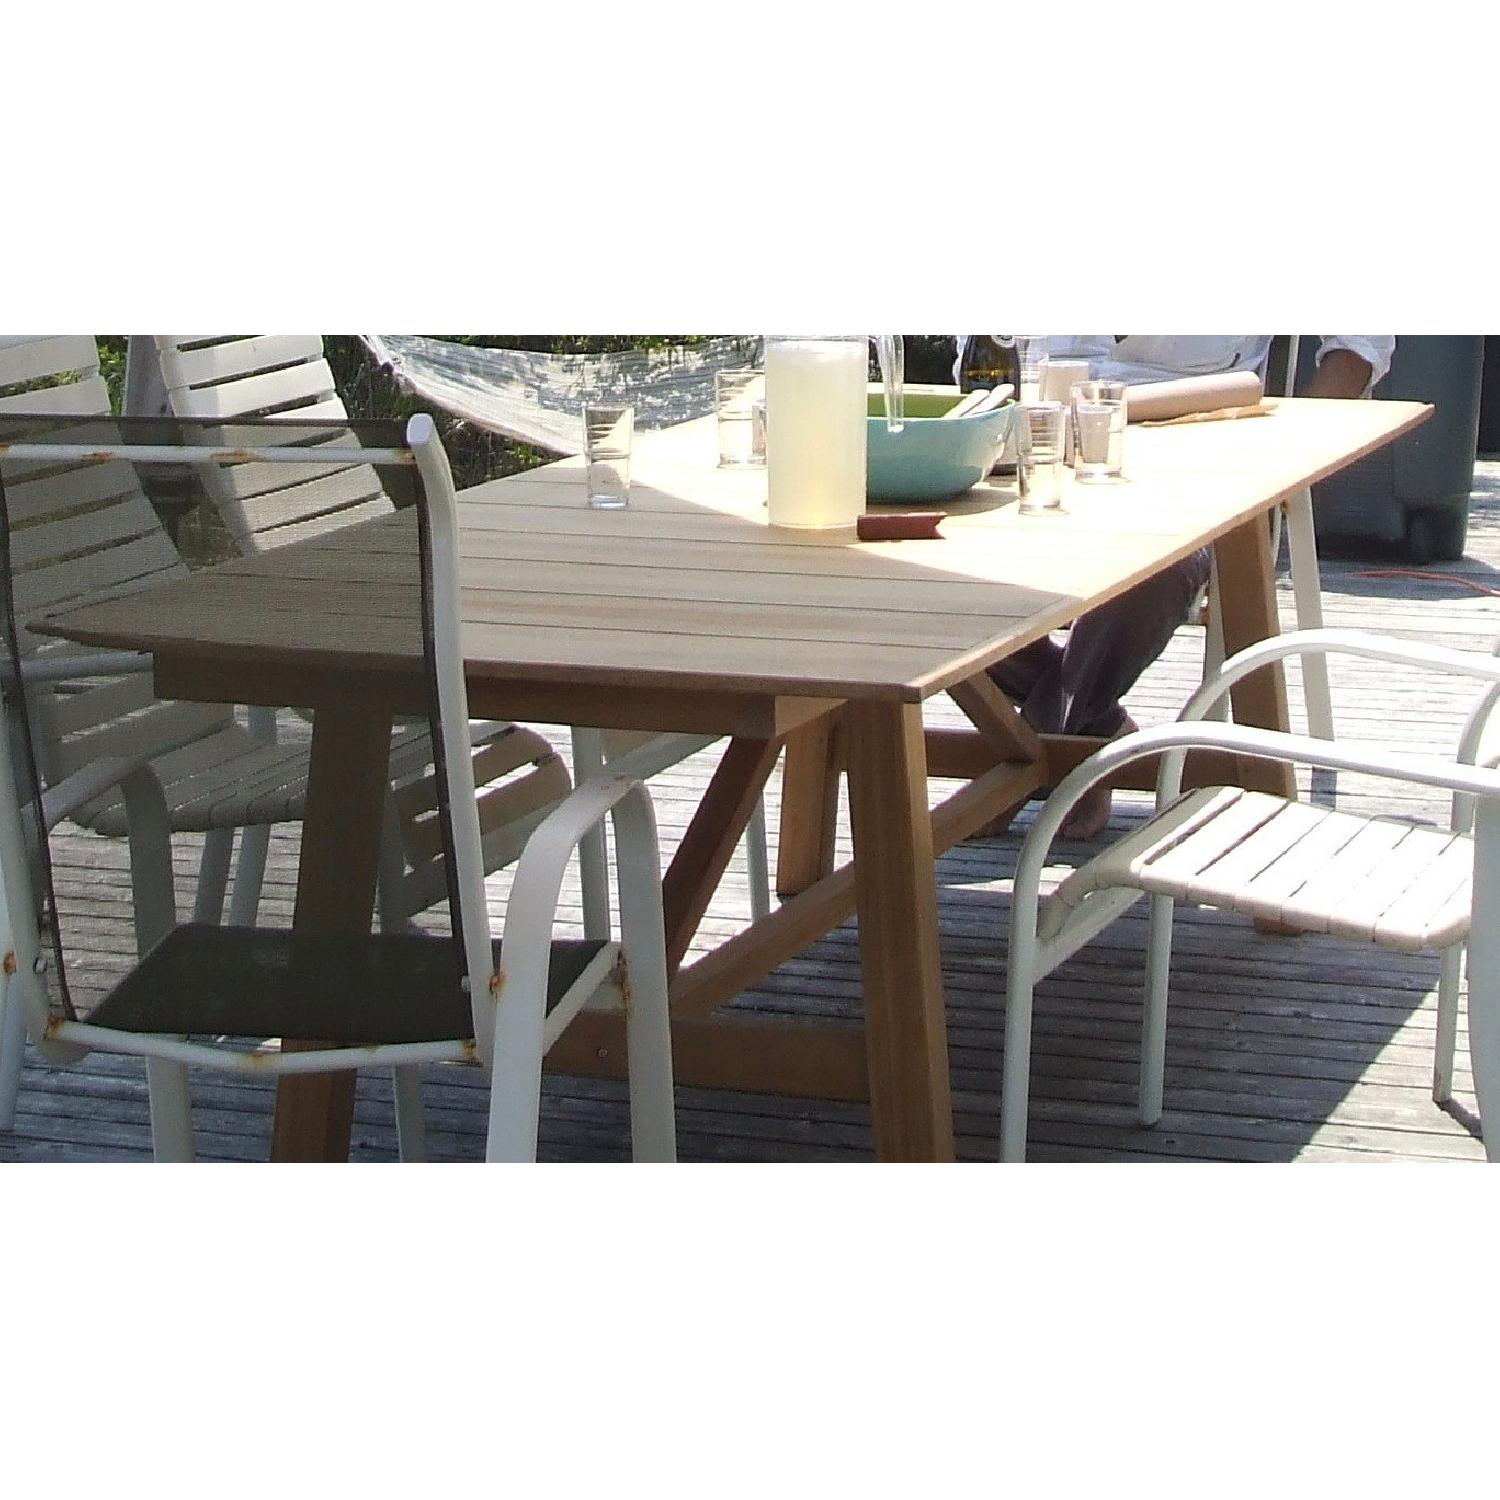 Design Within Reach Alden Collection Teak Outdoor Dining Table - image-3